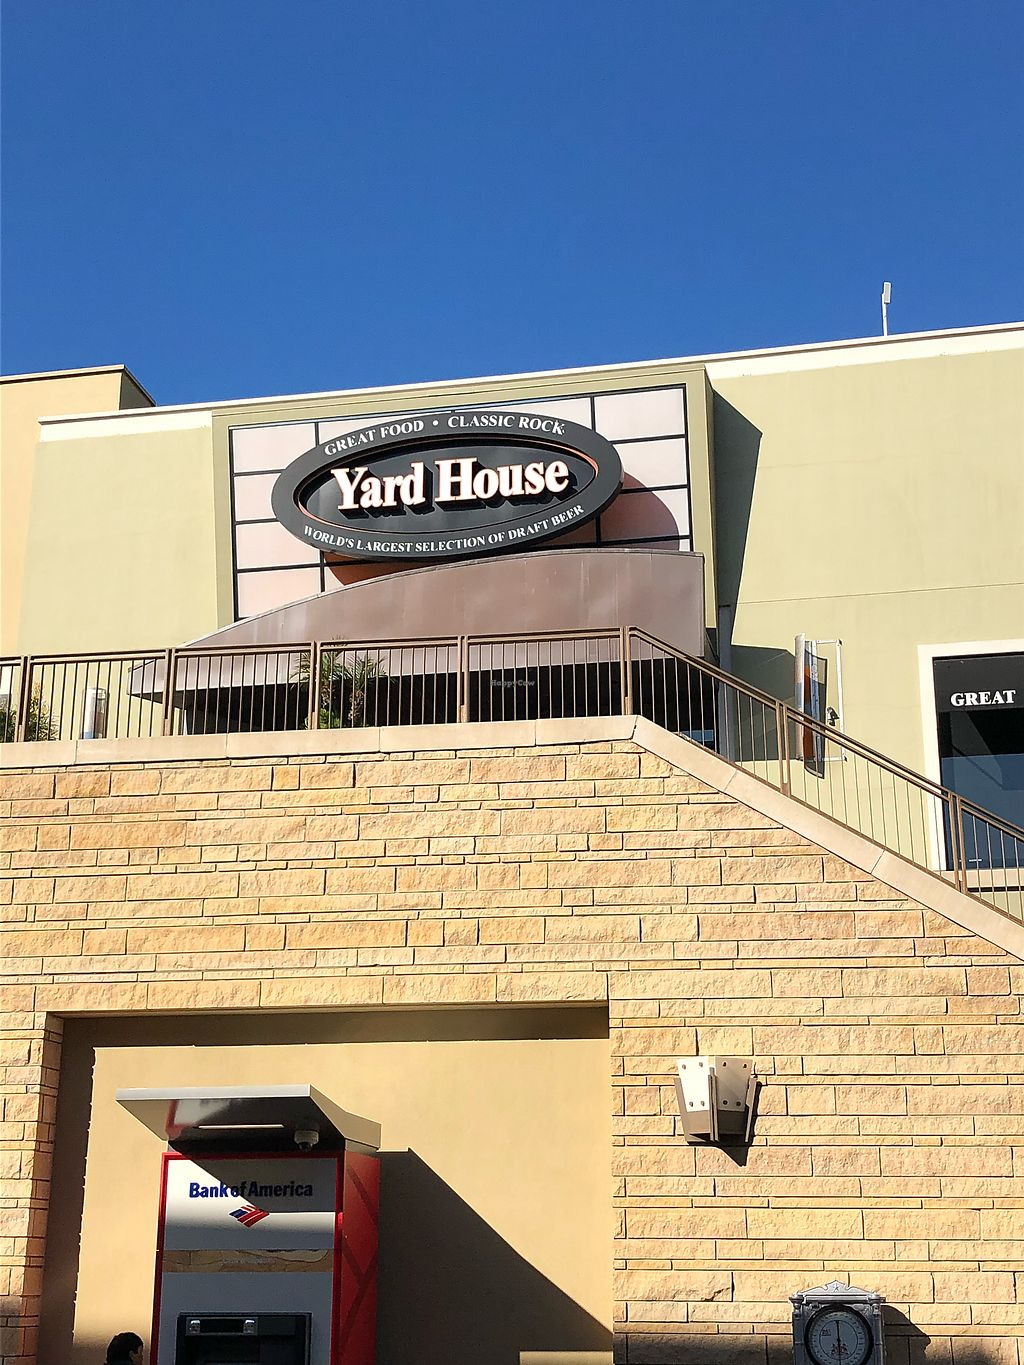 """Photo of Yard House  by <a href=""""/members/profile/Mattie_C"""">Mattie_C</a> <br/>Yard House  <br/> February 28, 2018  - <a href='/contact/abuse/image/96975/364952'>Report</a>"""